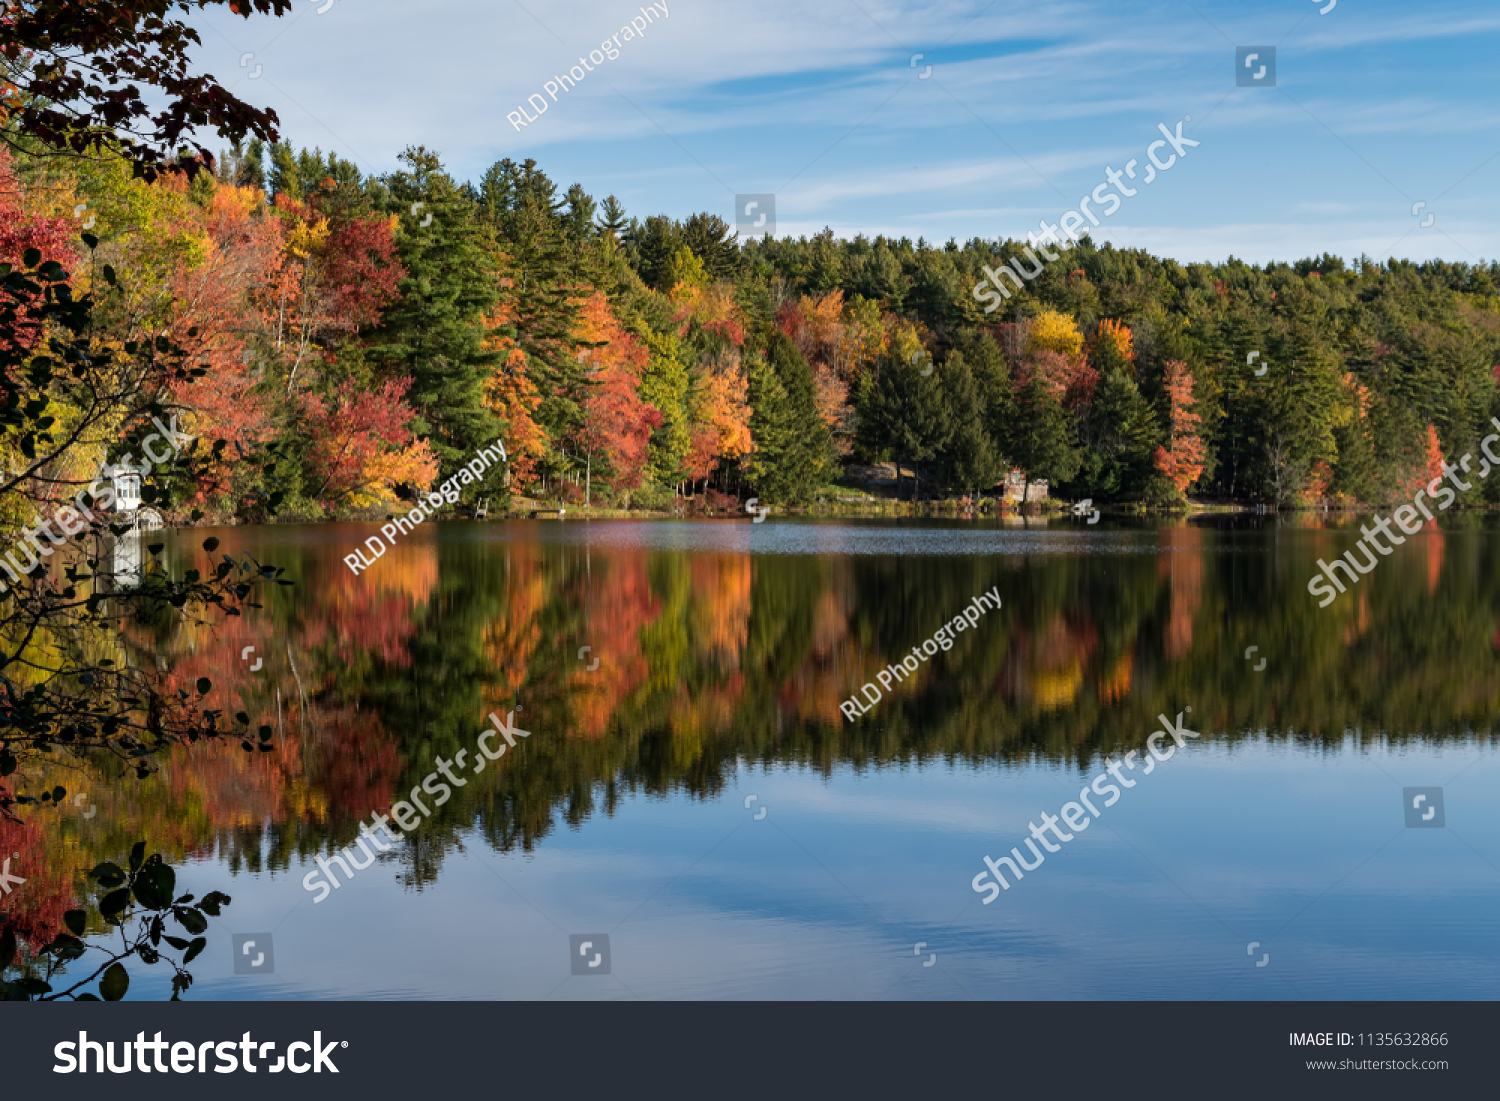 An image of a country pond in autumn with bright forest colors reflected in the water